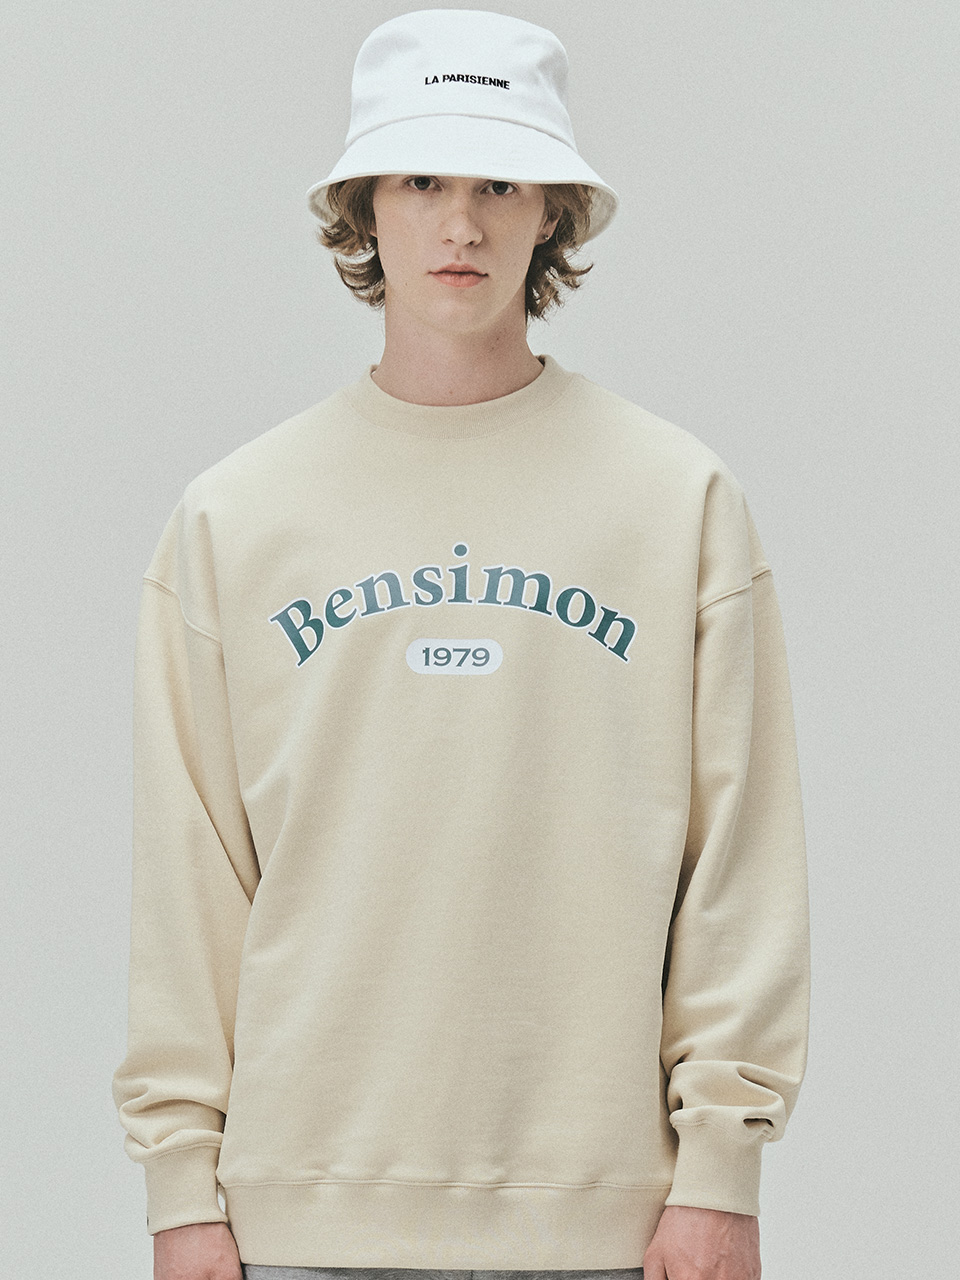 BENSIMON 1979 HERITAGE SWEAT SHIRT - CREAM